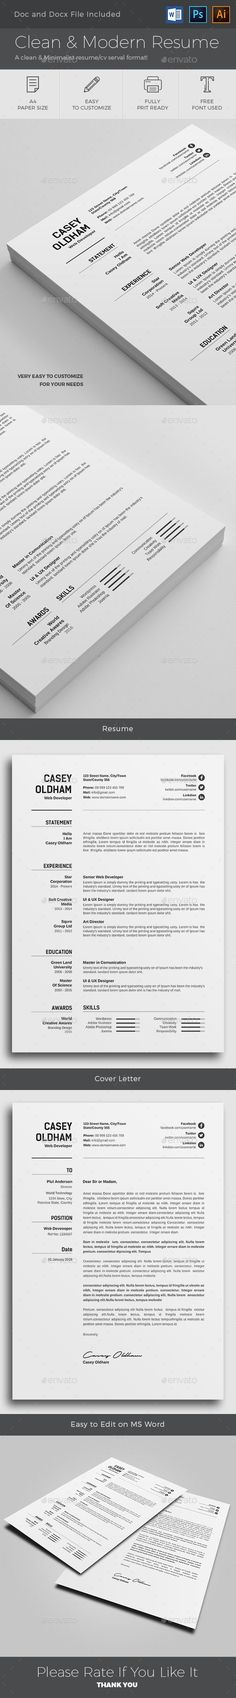 Resume Templates Clean & Modern Resume Template PSD, AI, MS Word